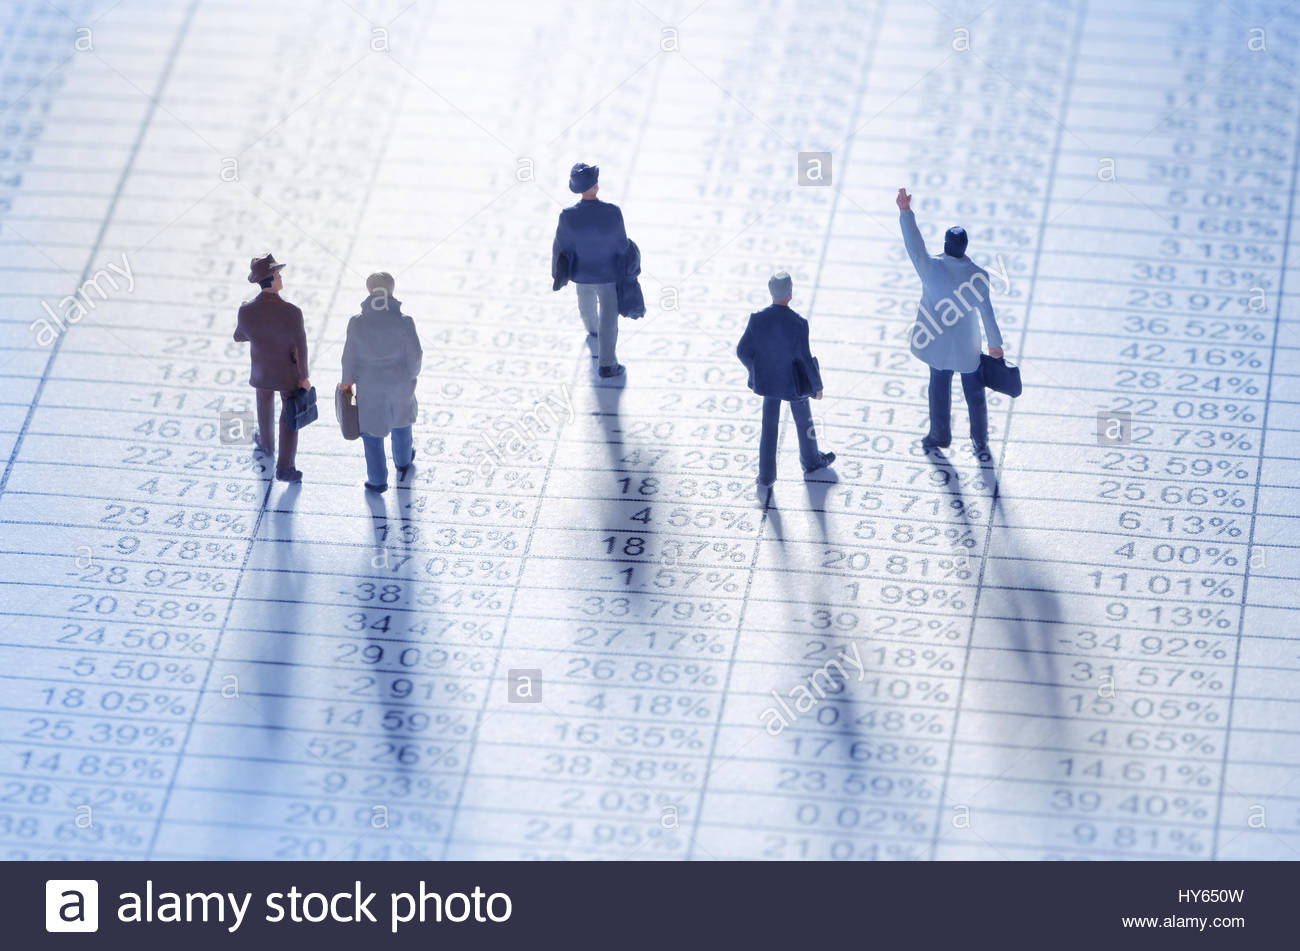 Businessmen playing the stock market - Stock Image